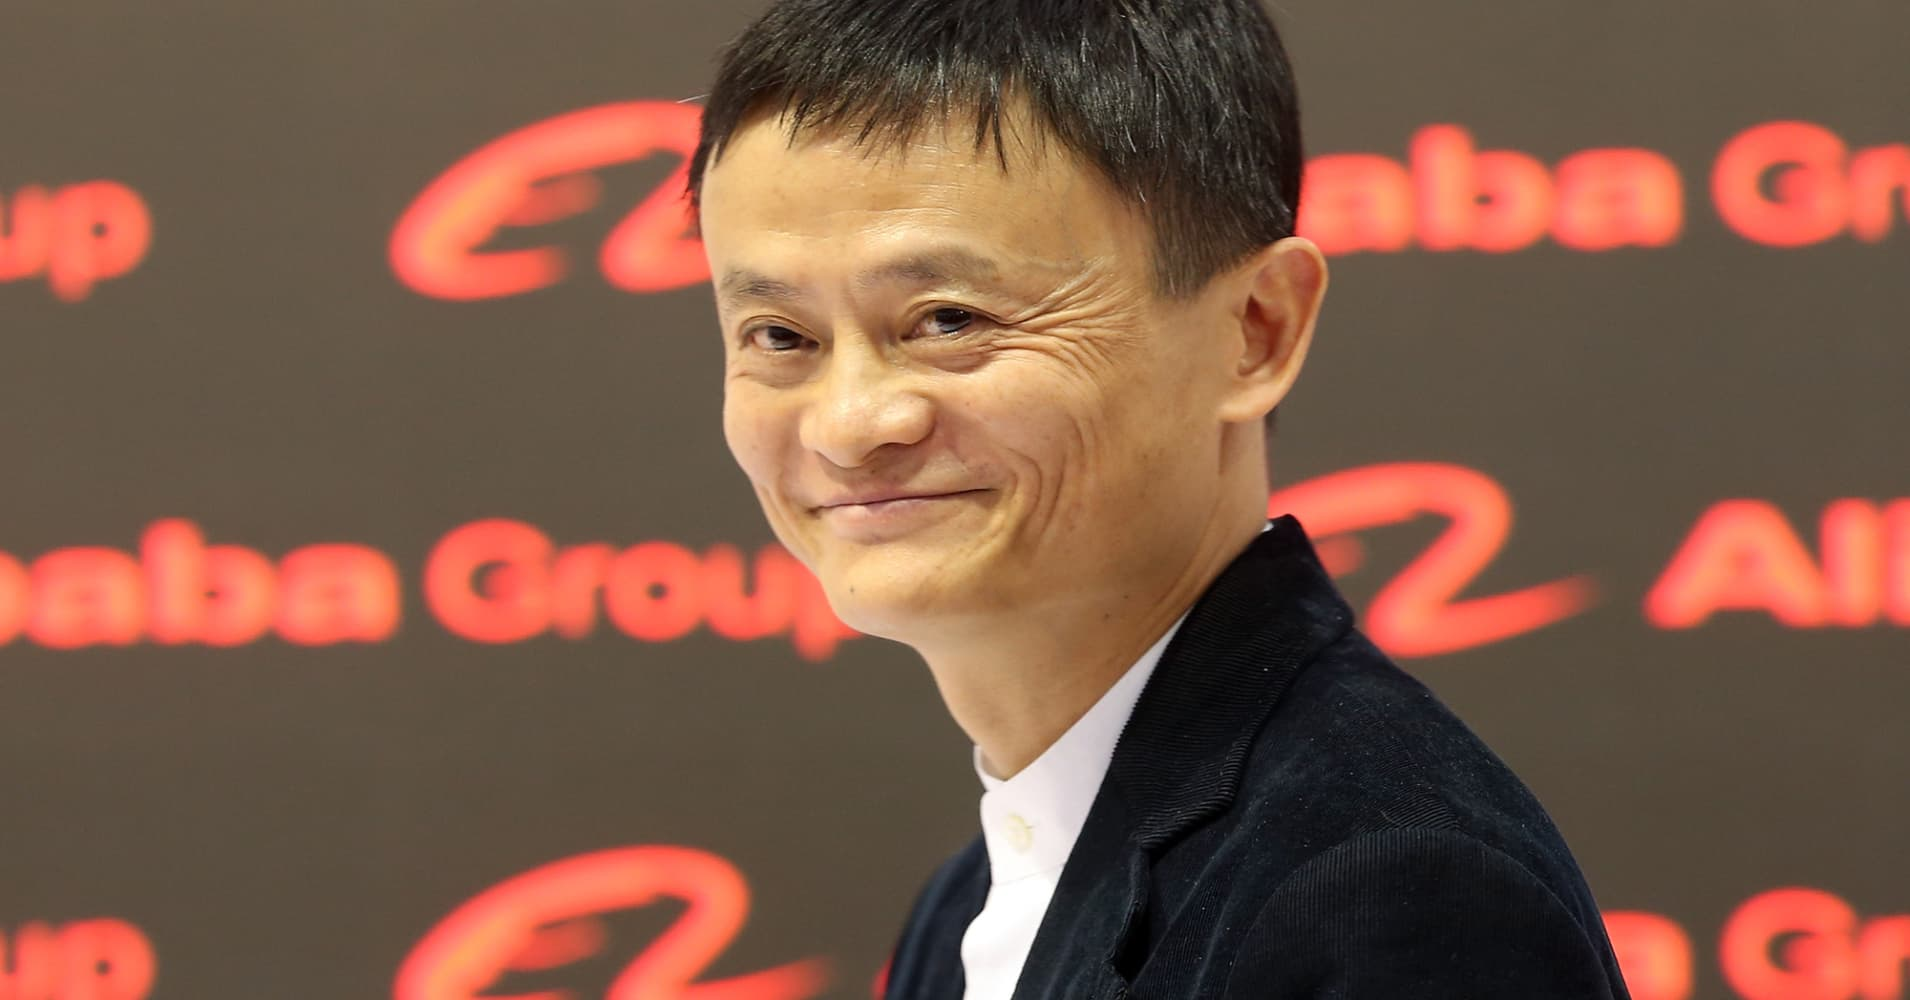 Alibaba launches A.I., big data cloud products in Europe in challenge to Amazon, Microsoft